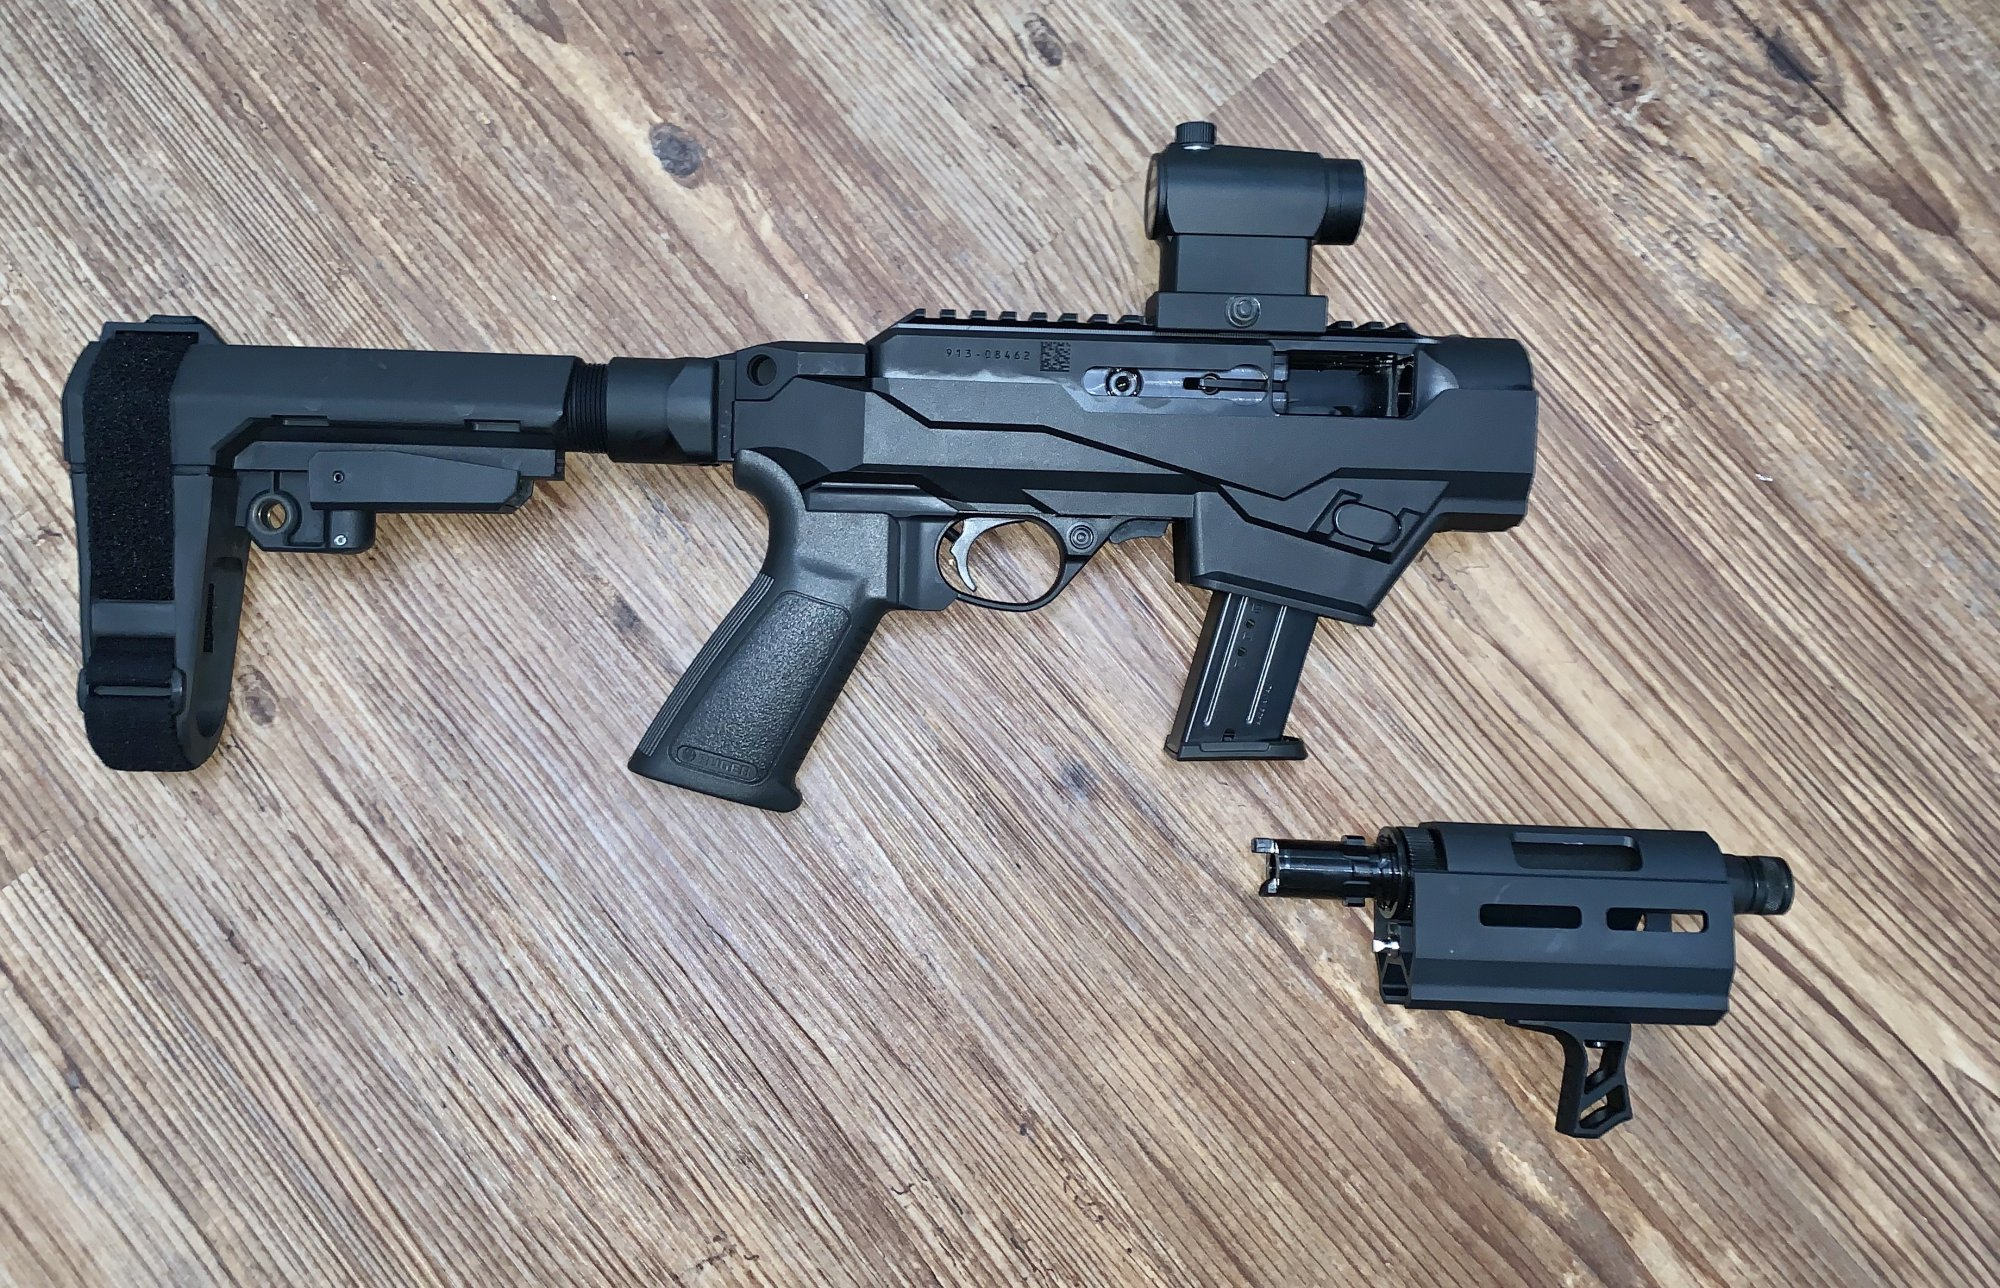 Ruger PC Takedown Charger w/ SB Tactical Brace and Red Dot